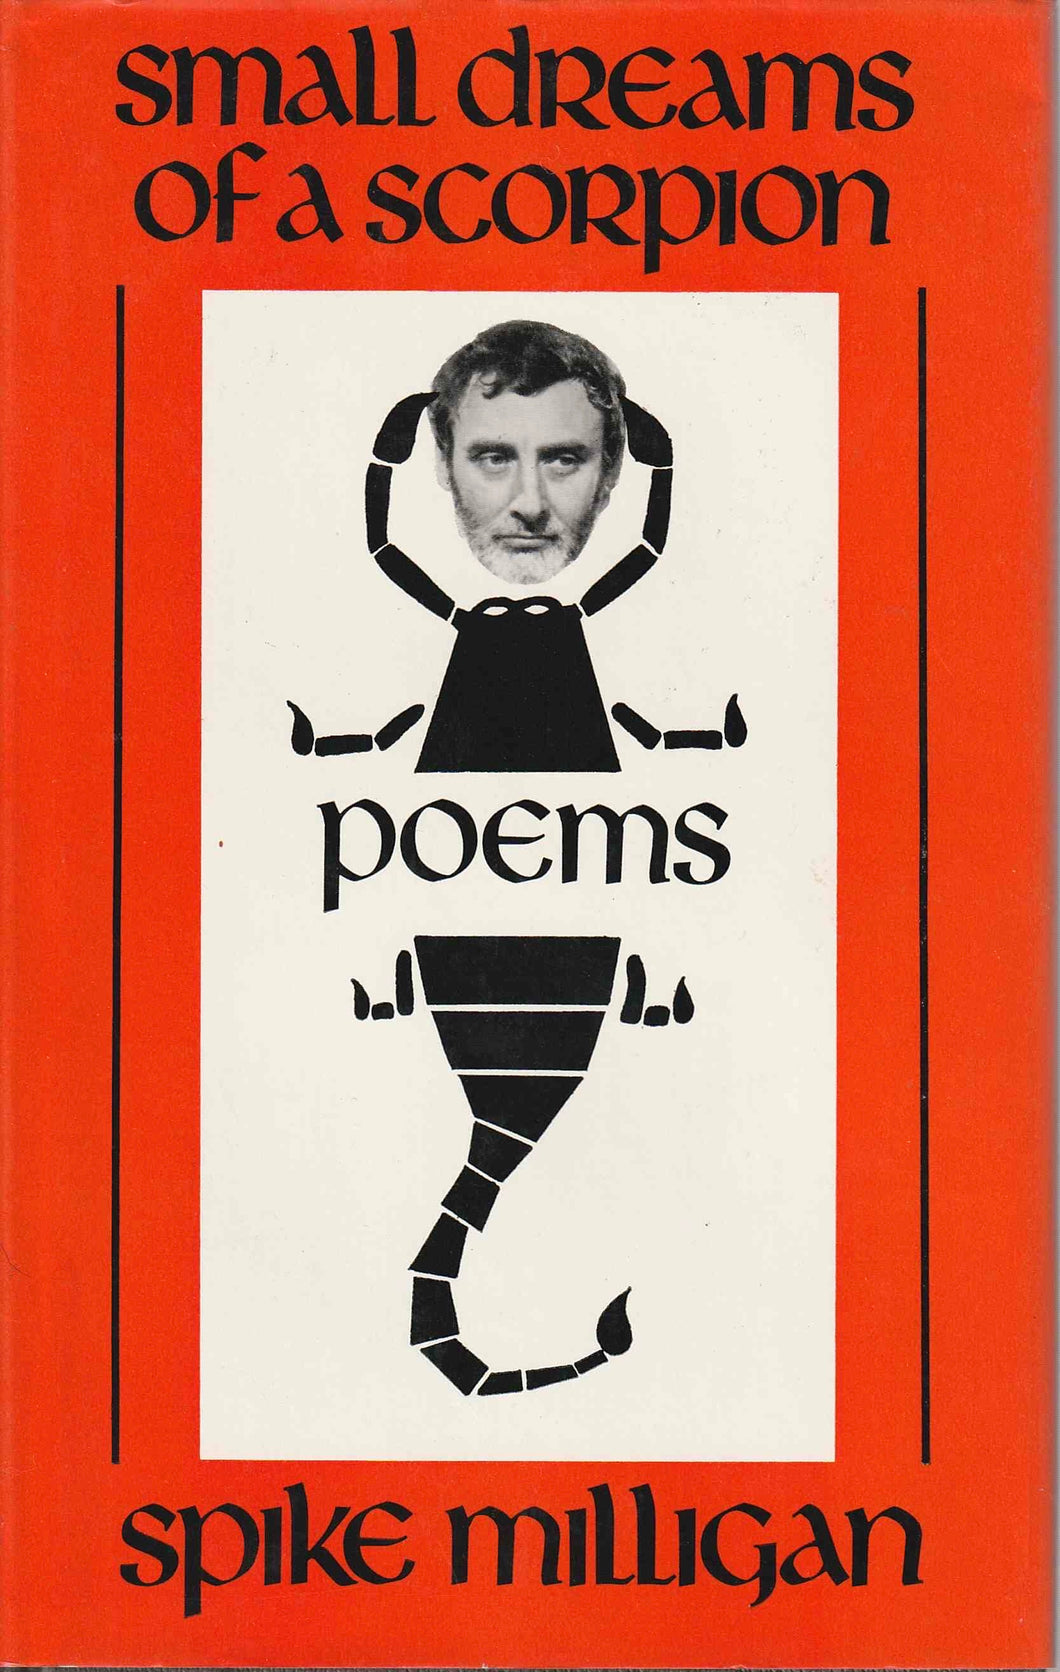 Small Dreams of a Scorpion Spike Milligan